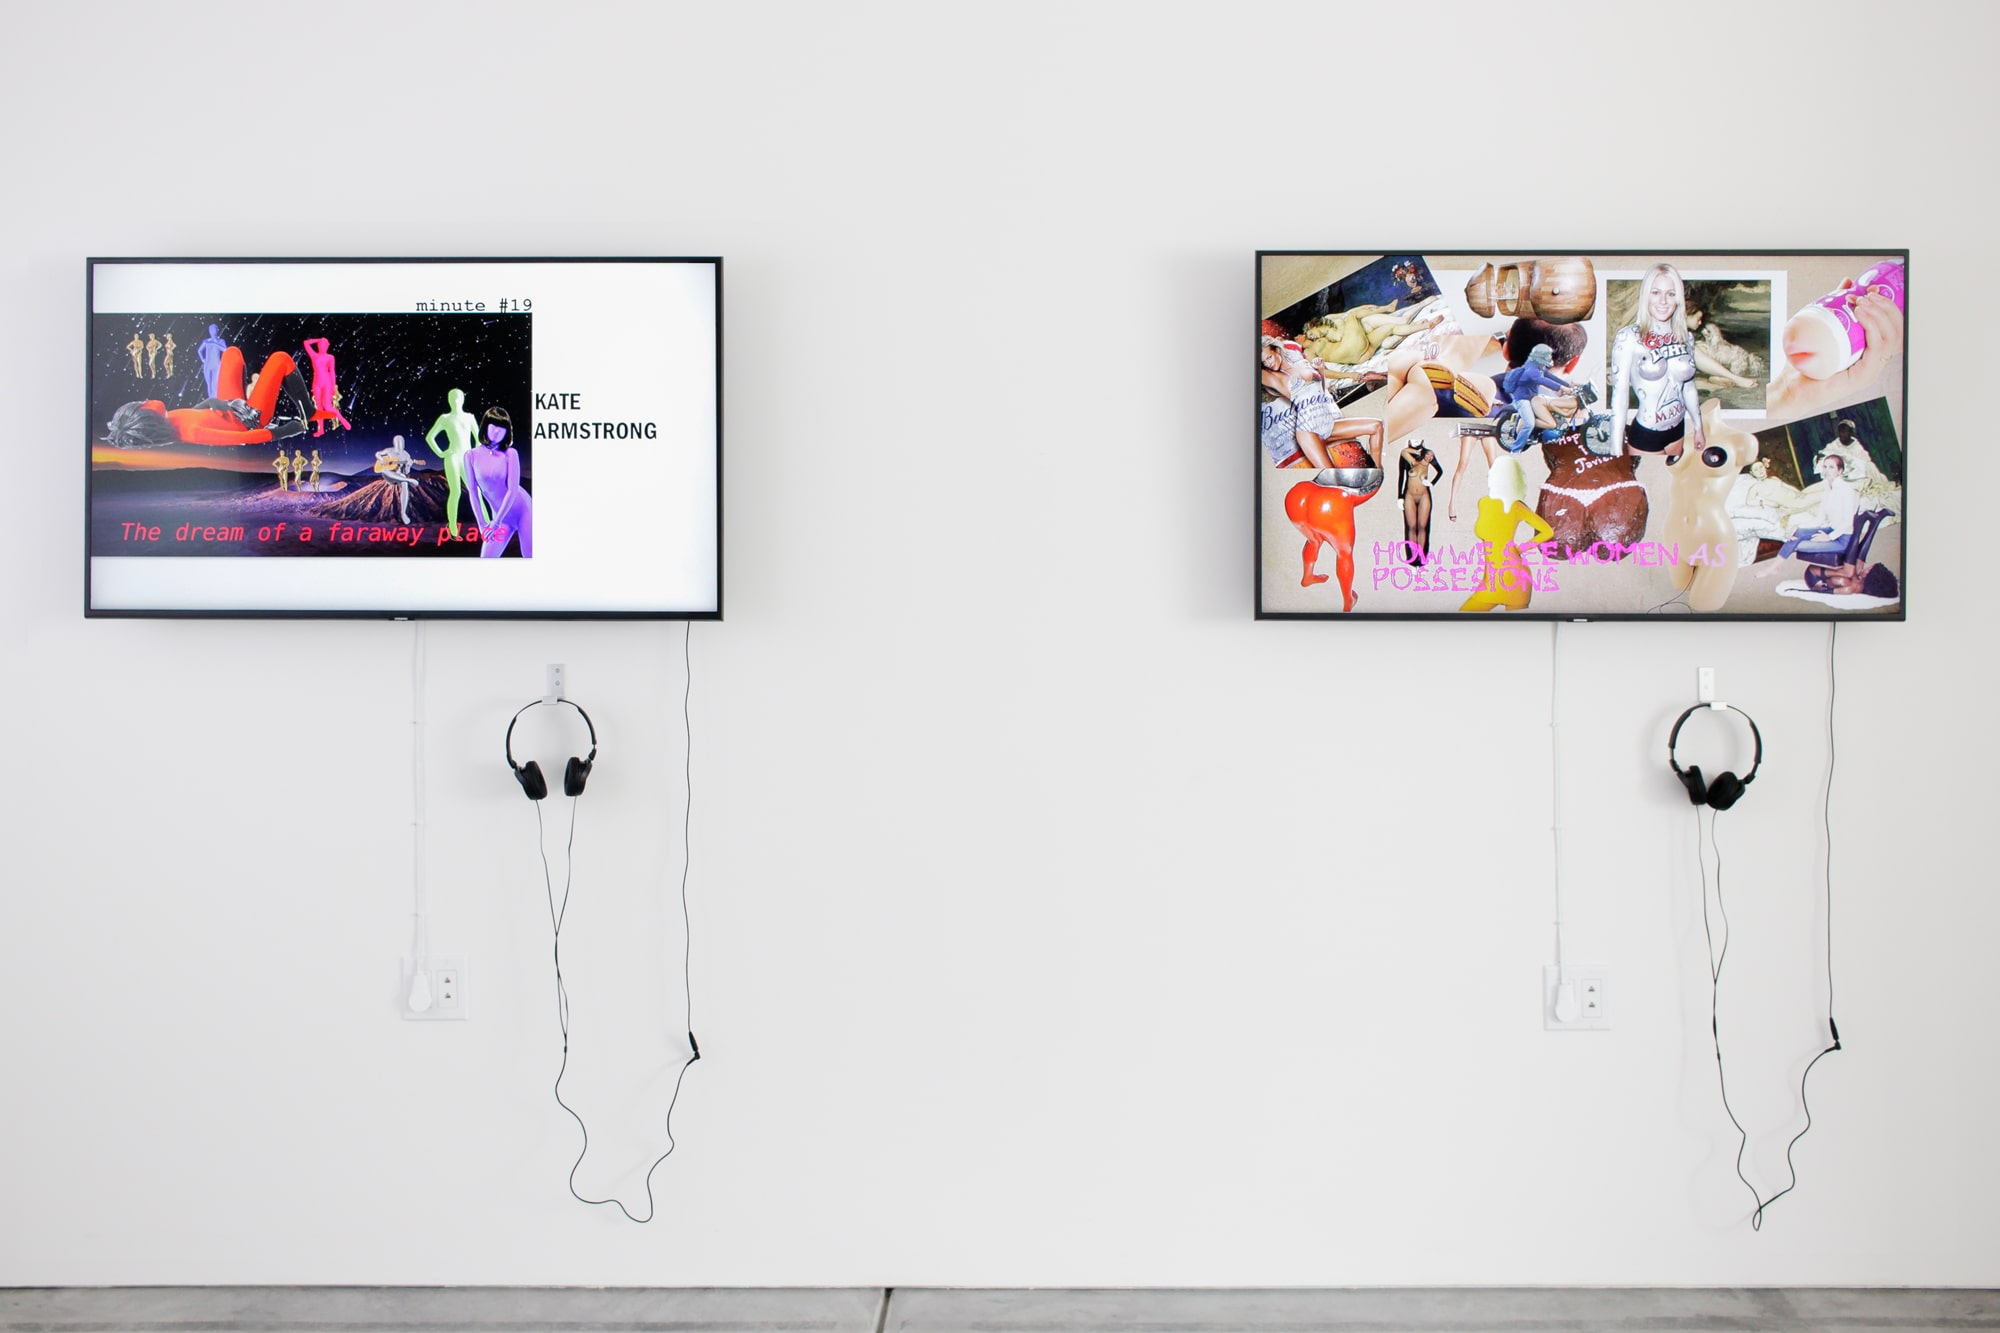 Installation View: Kate Armstrong, episode #4, minute 19 and Faith Holland, episode # 1 , minute 29